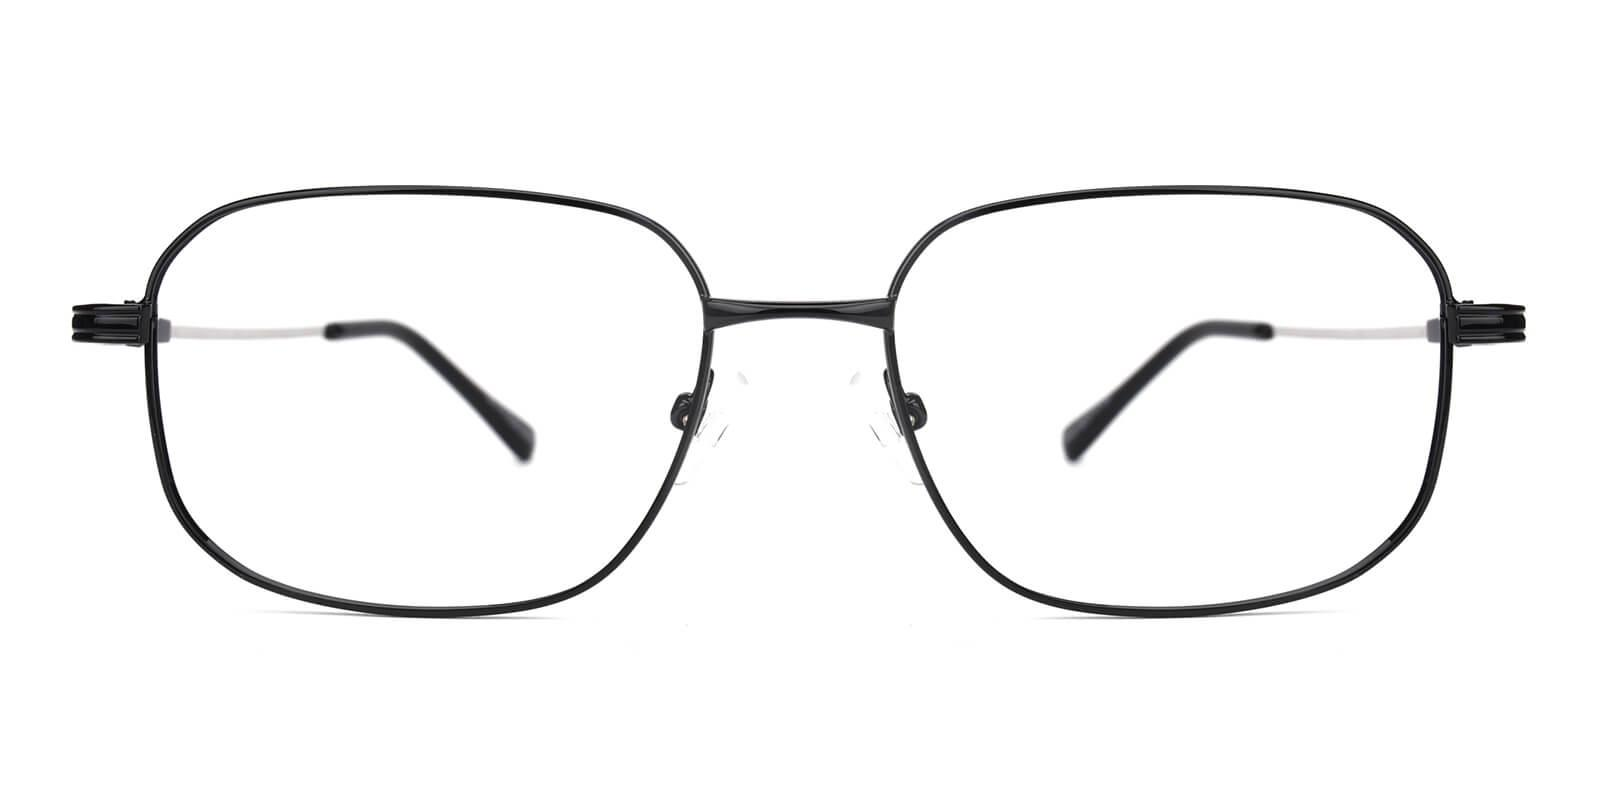 Weston-Black-Square-Metal-Eyeglasses-additional2